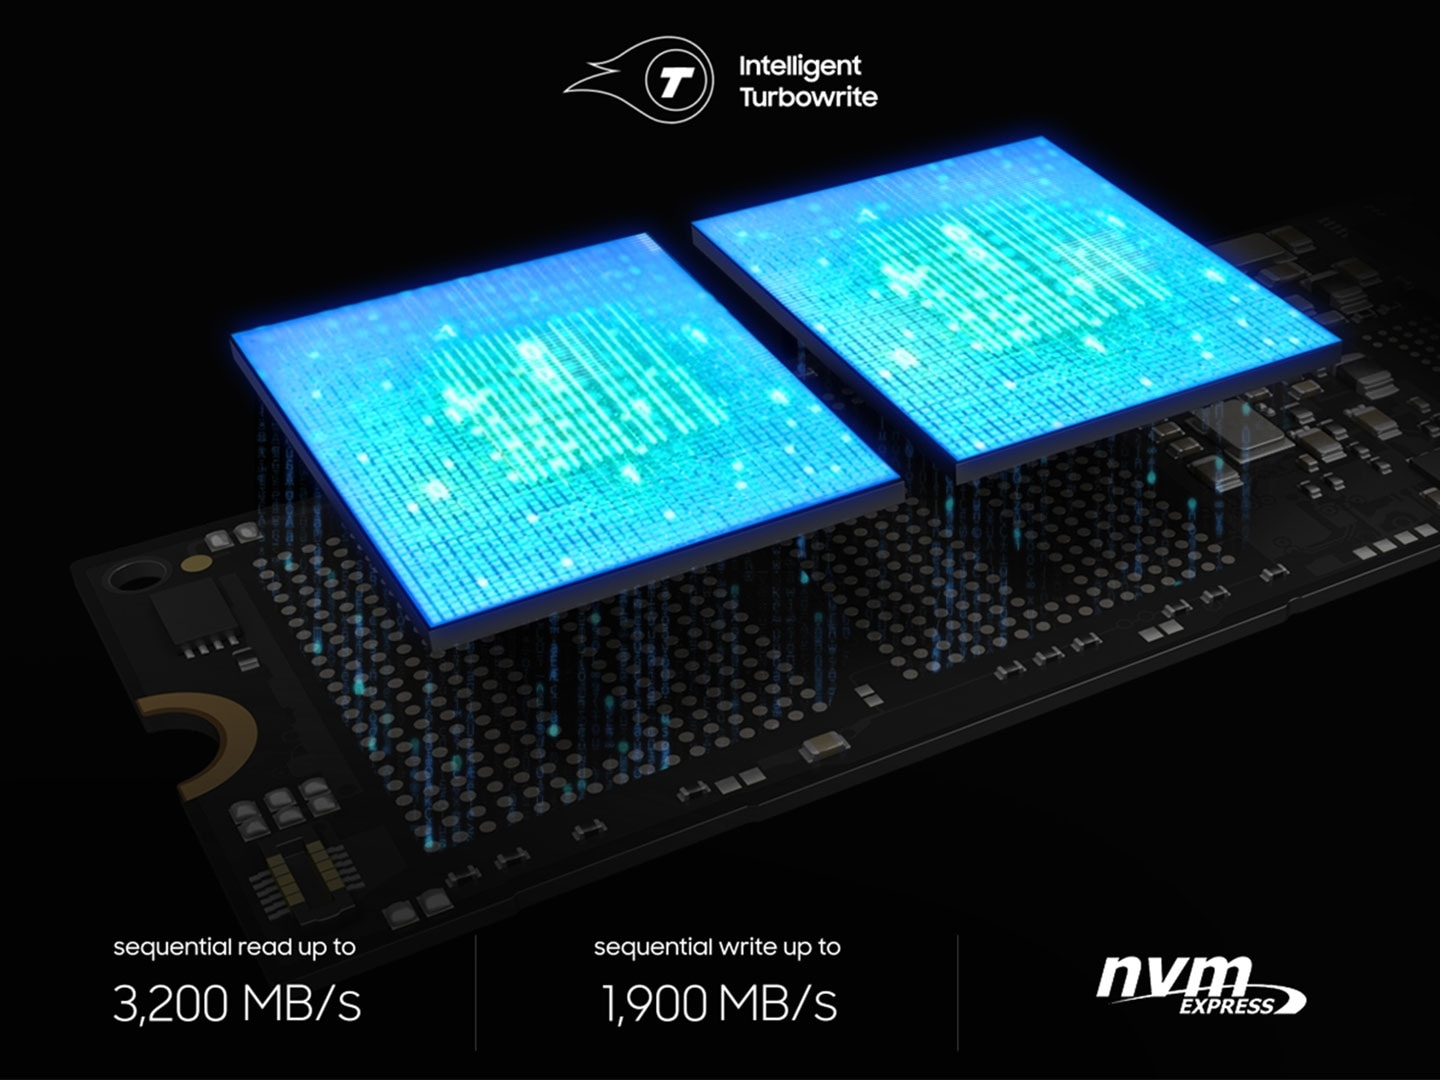 960 EVO's core components are floated on the air and they seem like to share data describing its bandwidth; 960 EVO has sequential reading speeds of up to 3.200 MB/s, and capable of writing at a speed of 1,900 MB/s.